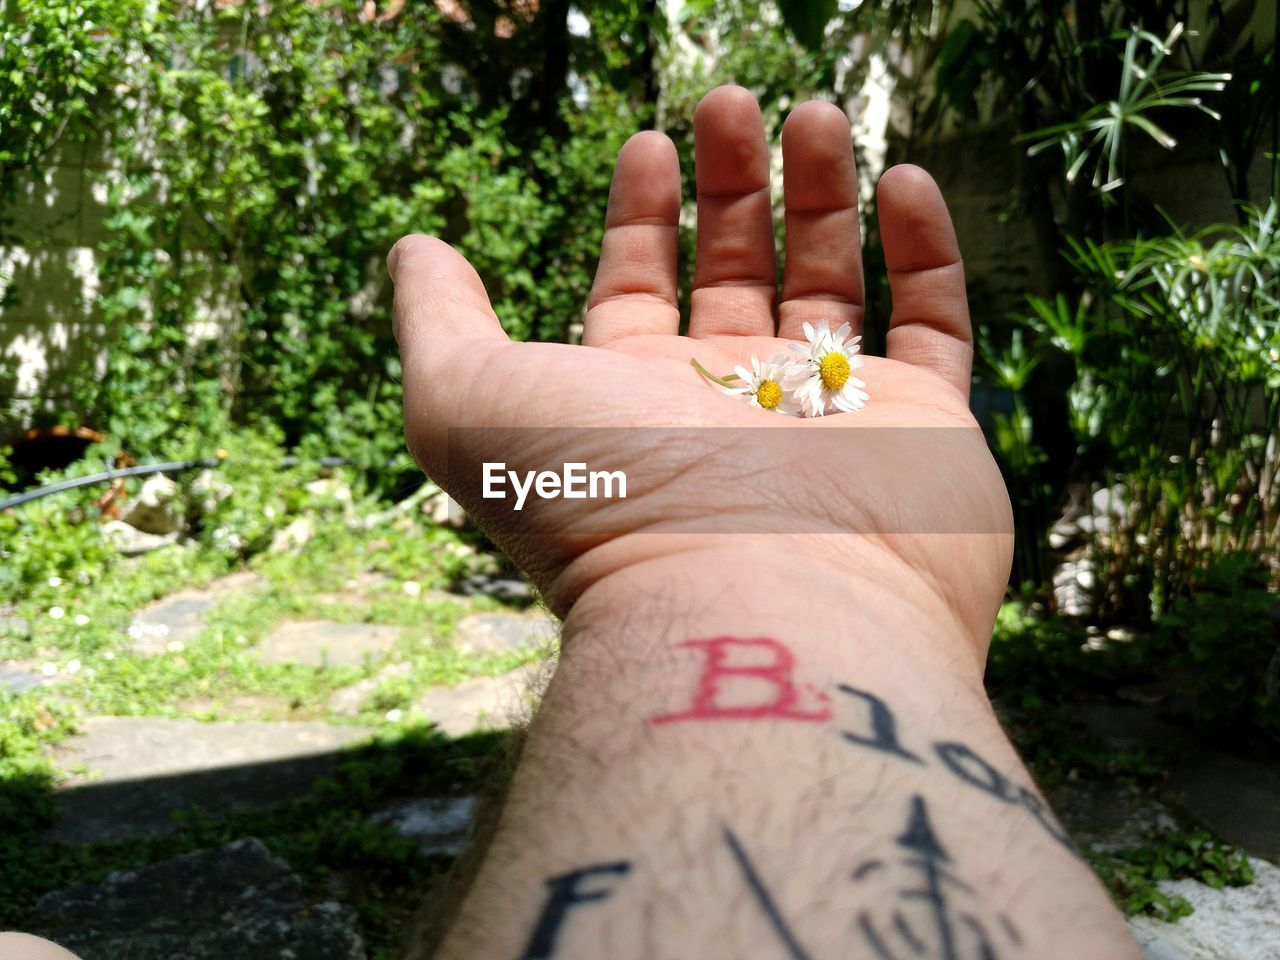 Close-Up Of Human Hand With Tattoo Holding Flowers Against Plants